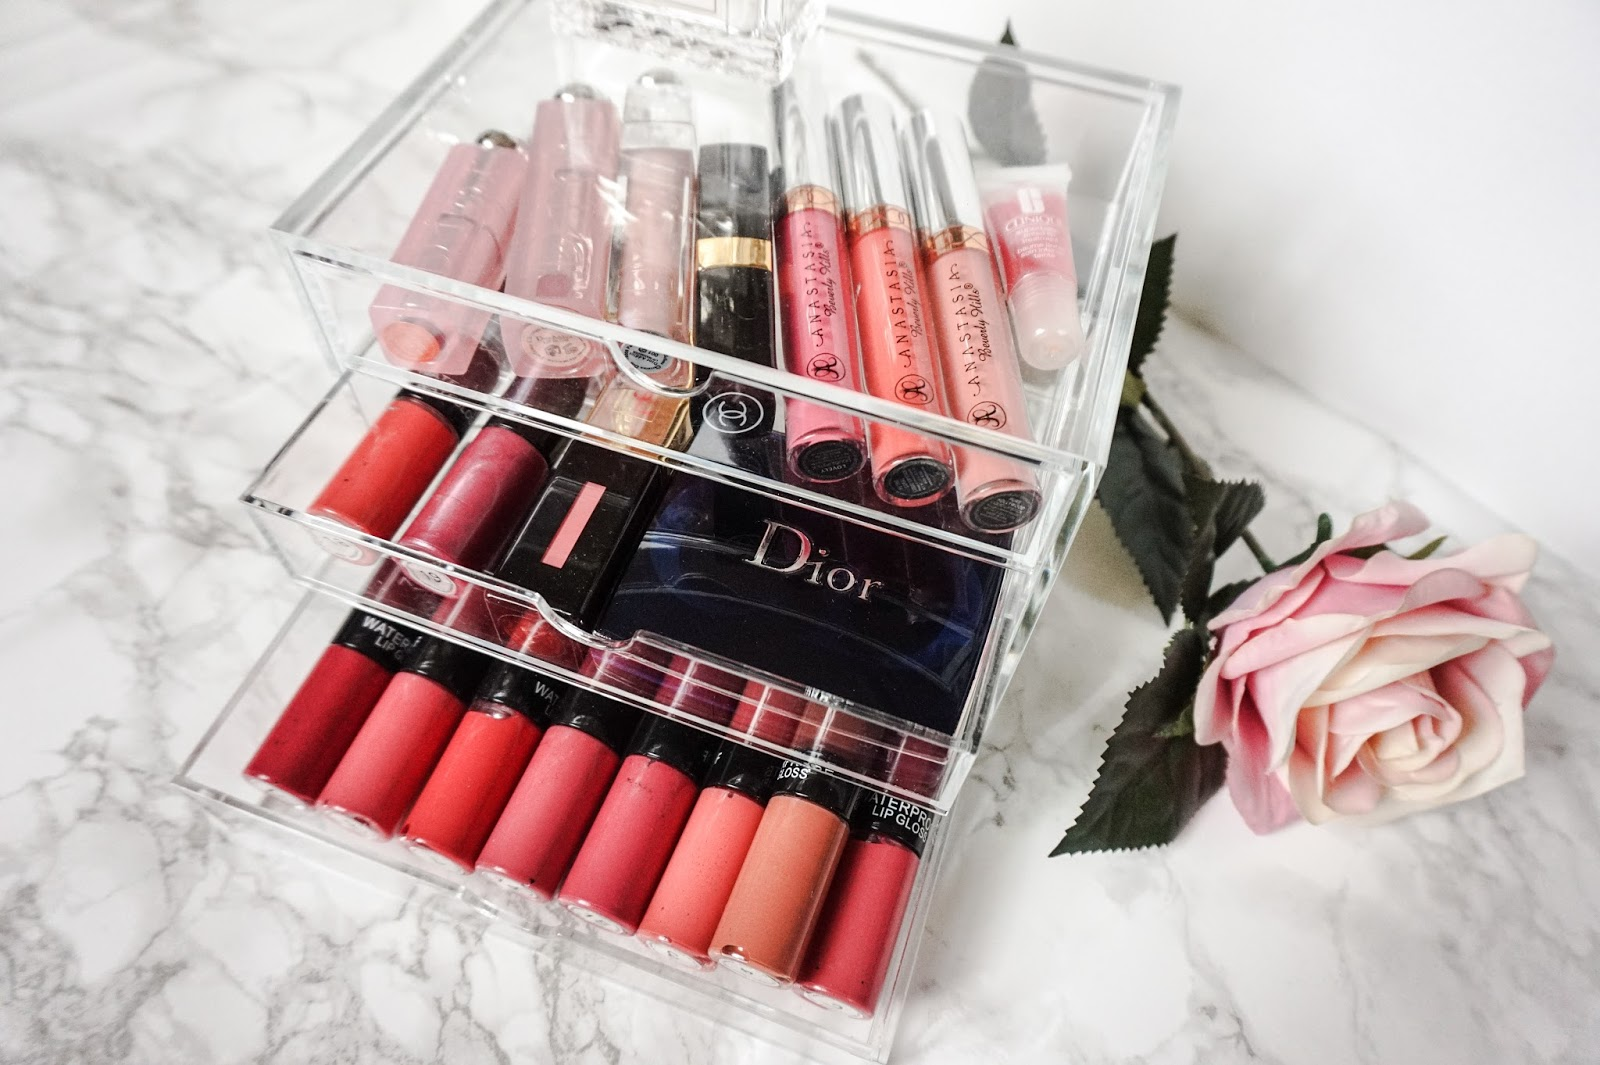 Medium acrylic storage box with lip products